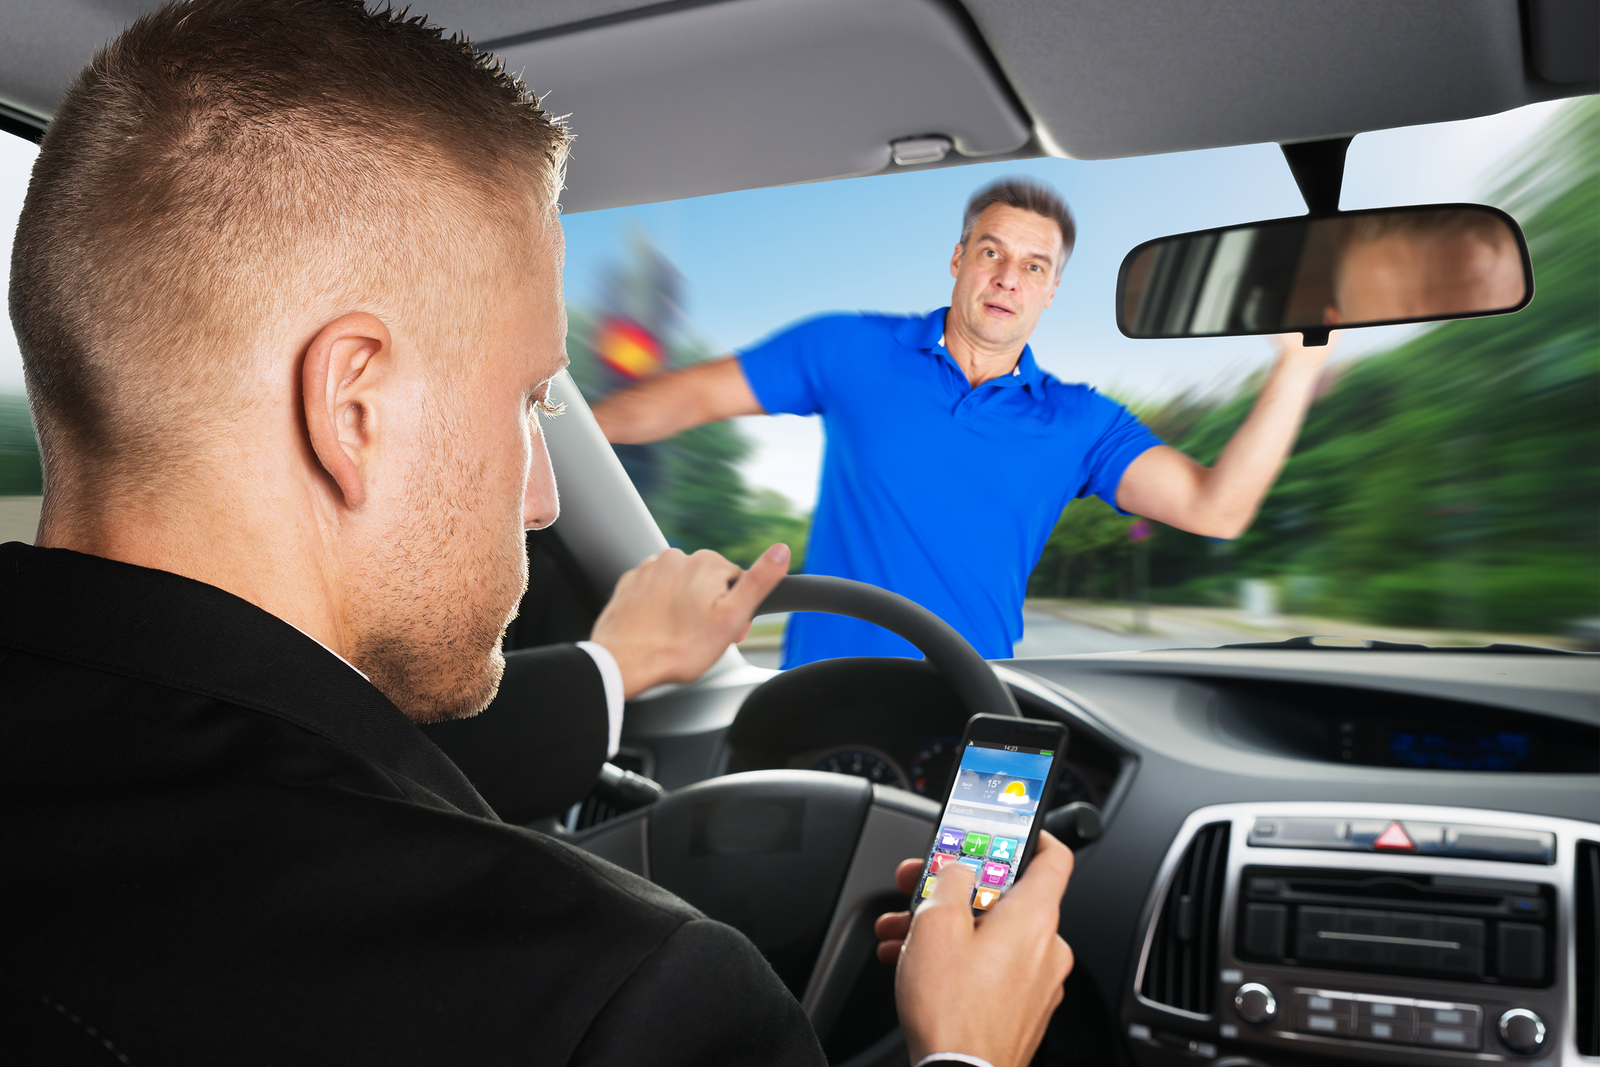 Hit A Pedestrian, What Should I Expect – Car Accident Guide